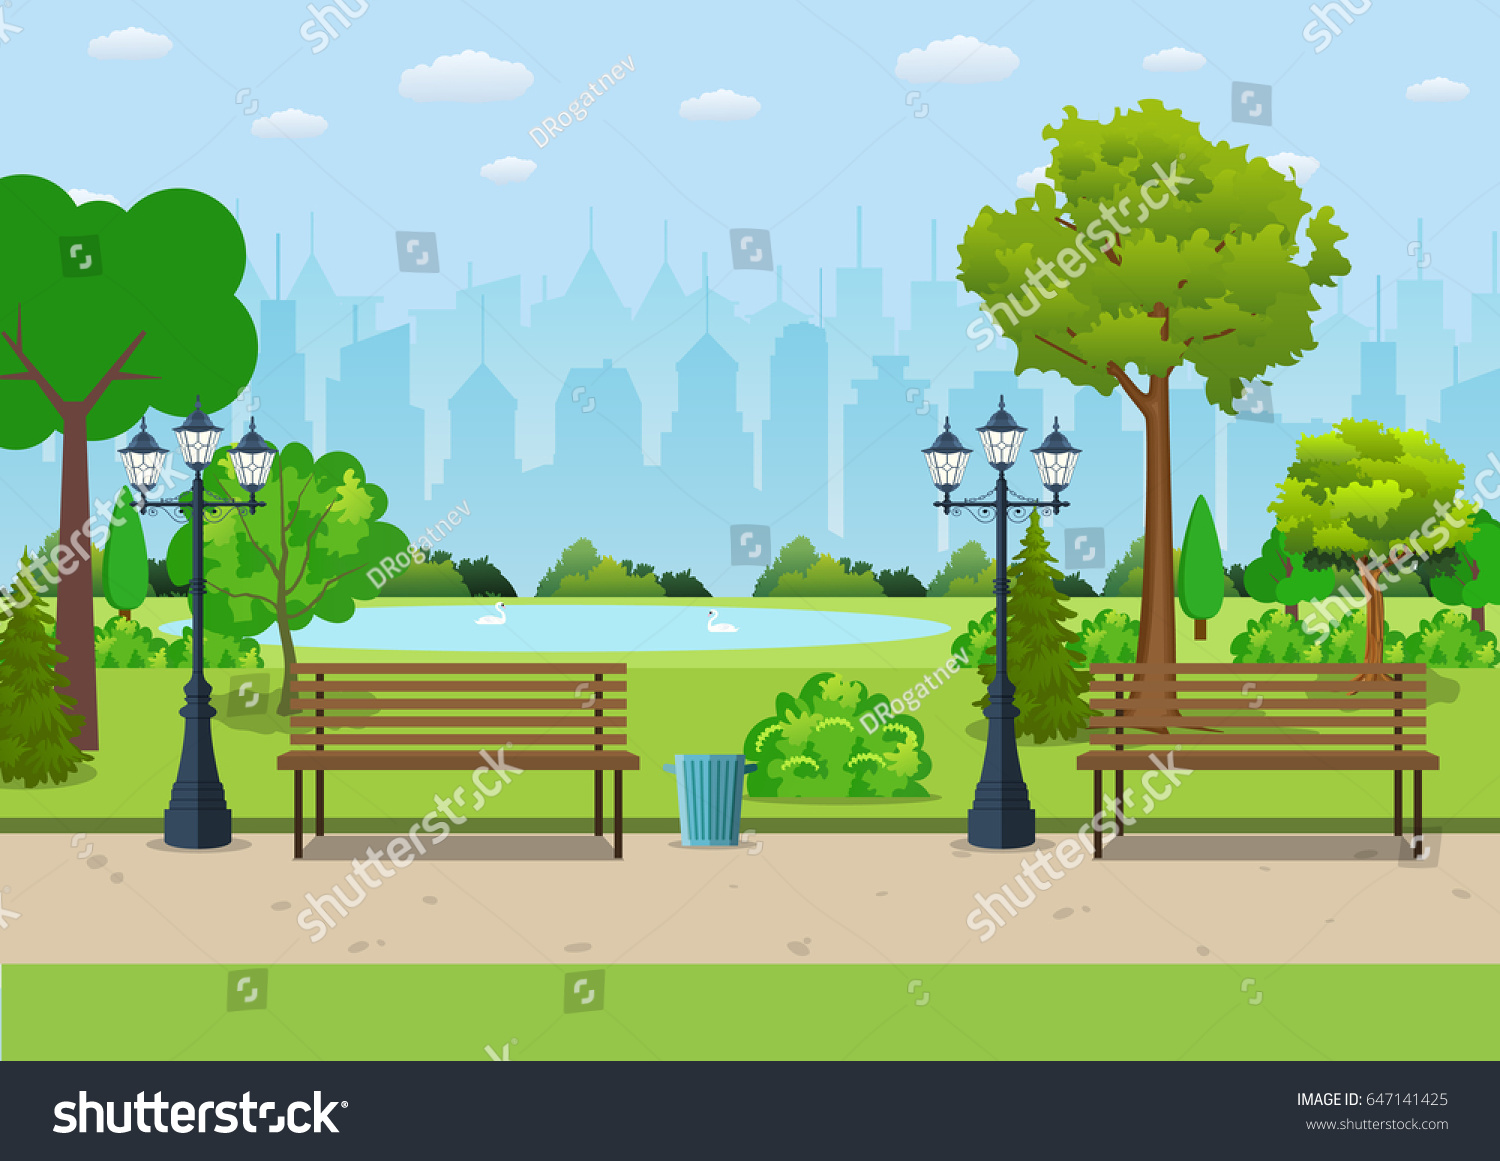 Bench with tree and lantern in the Park. Vector illustration in flat style #647141425